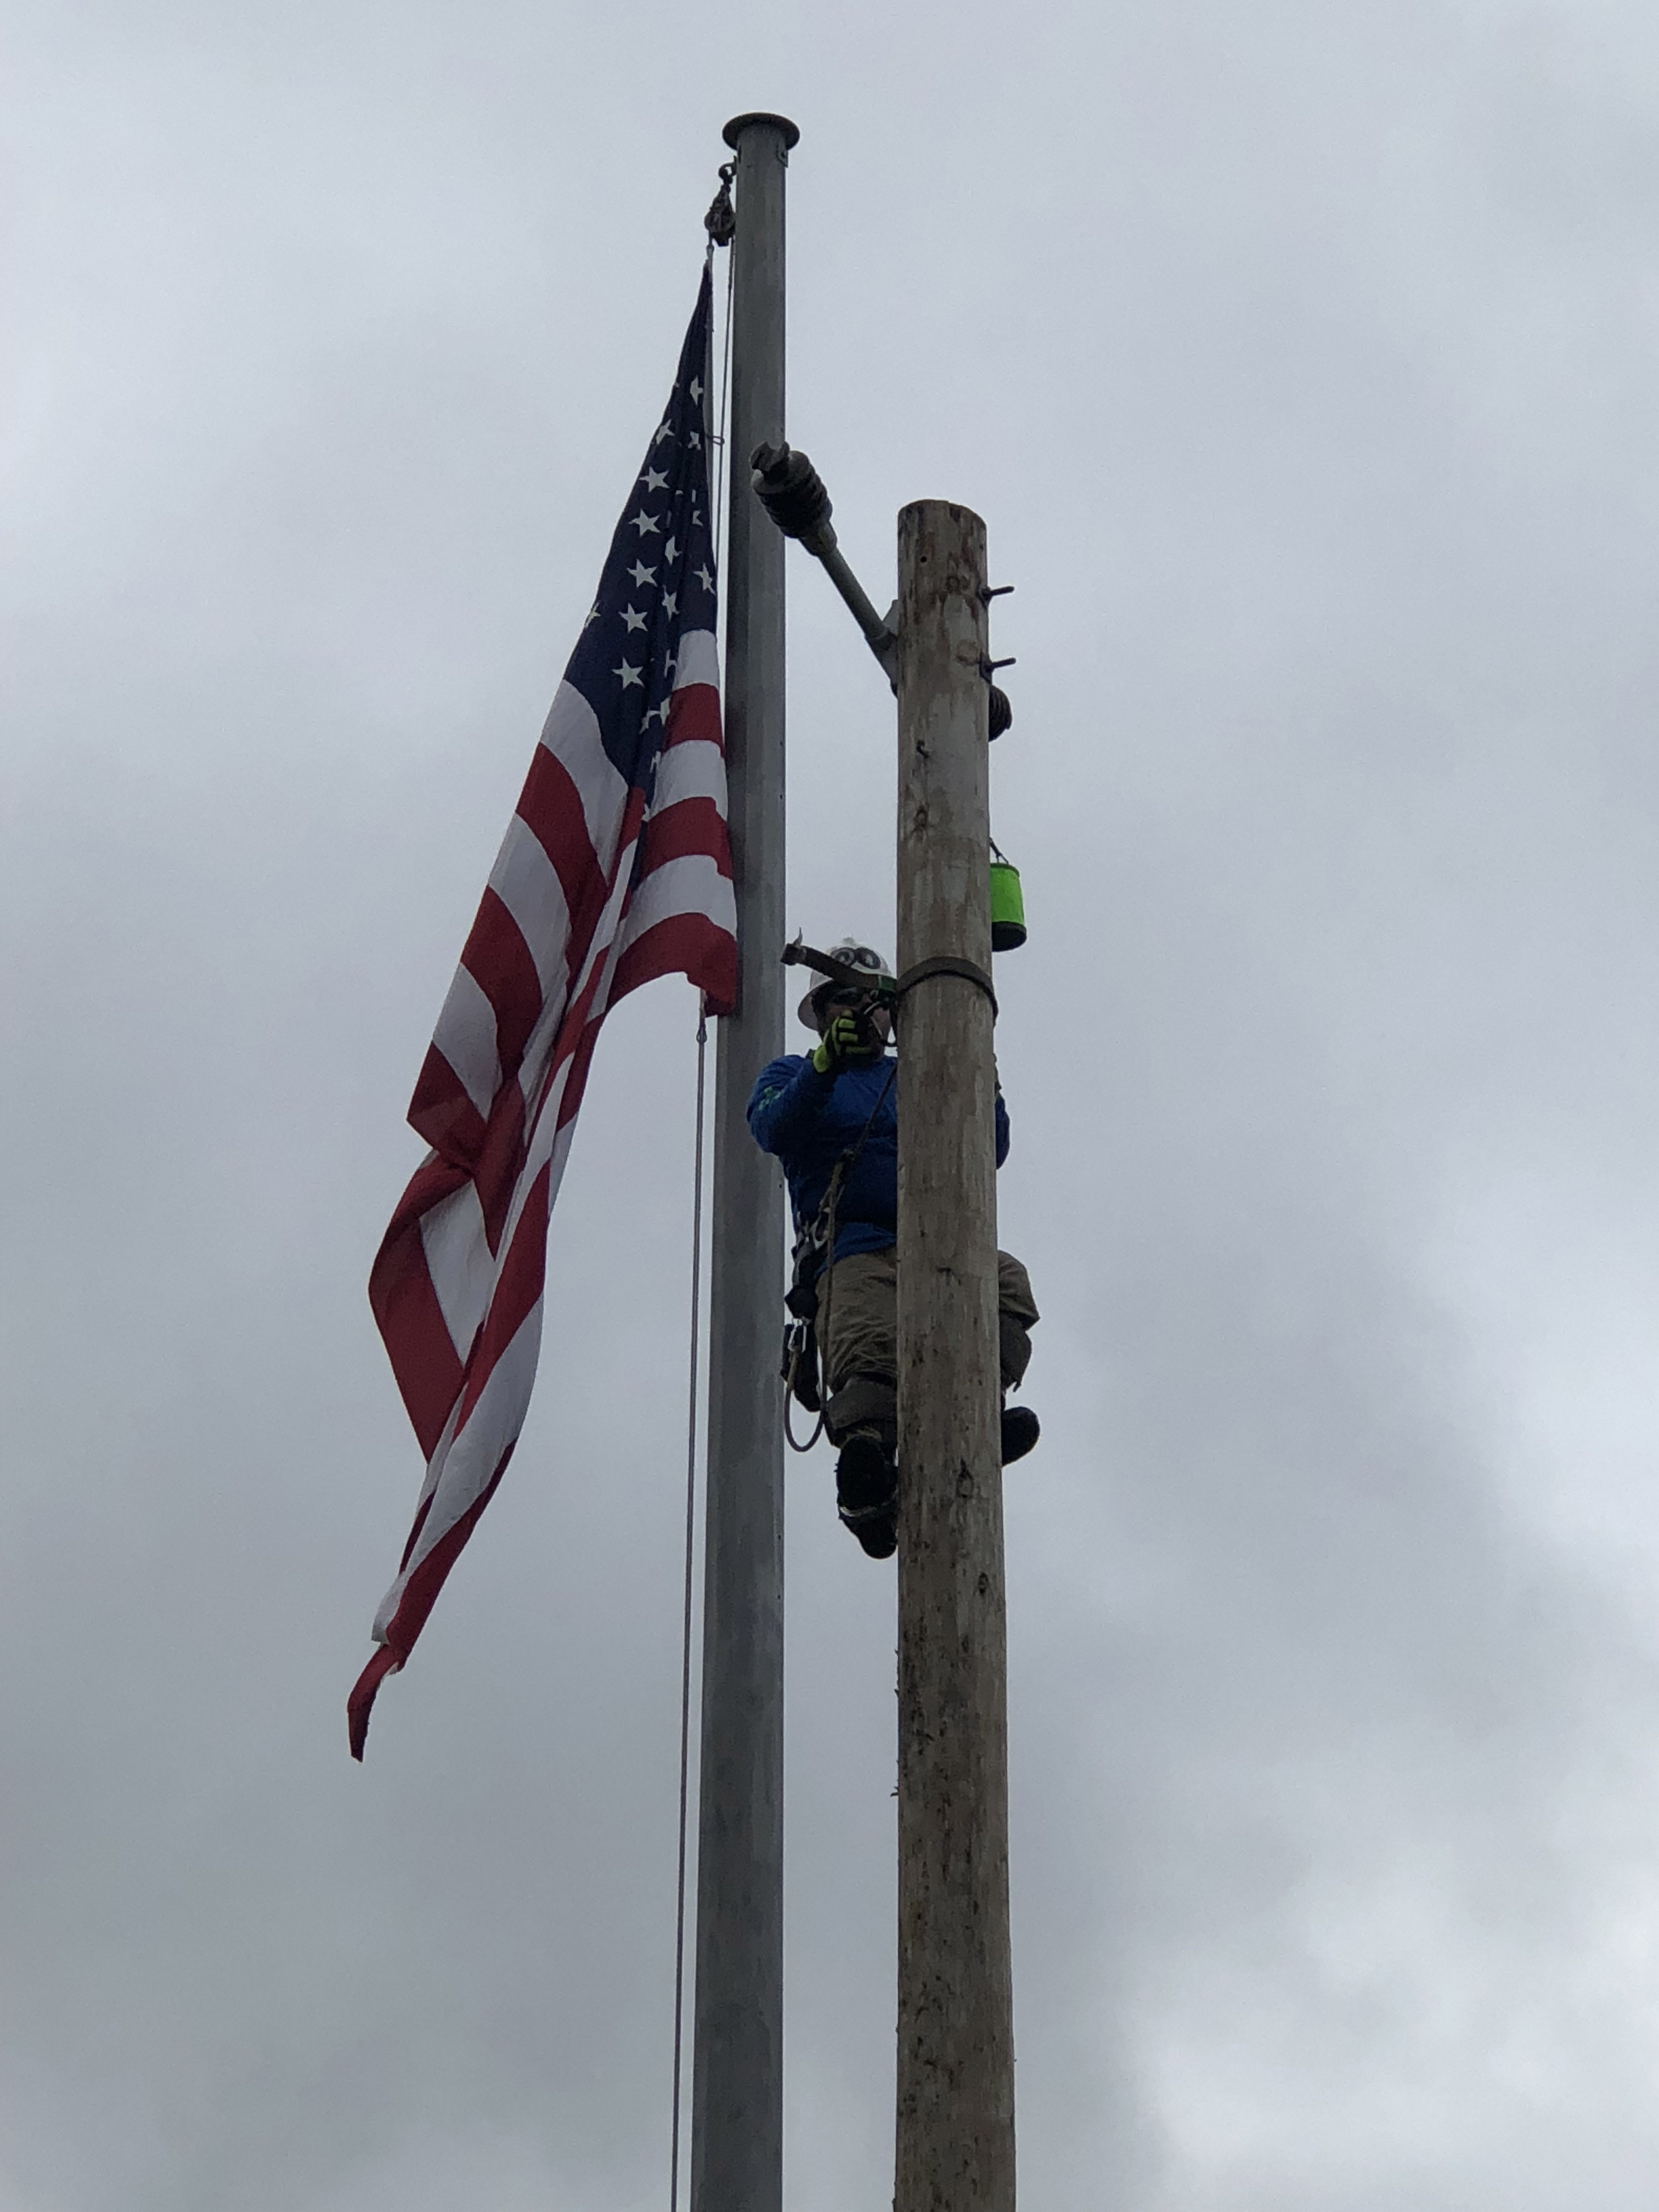 IBEW Local 1393's very own, Trent McQuay, Colton Baird, Drew Batty, and  Clay Willis competing at the International Lineman's Rodeo in Overland Park  Kansas.